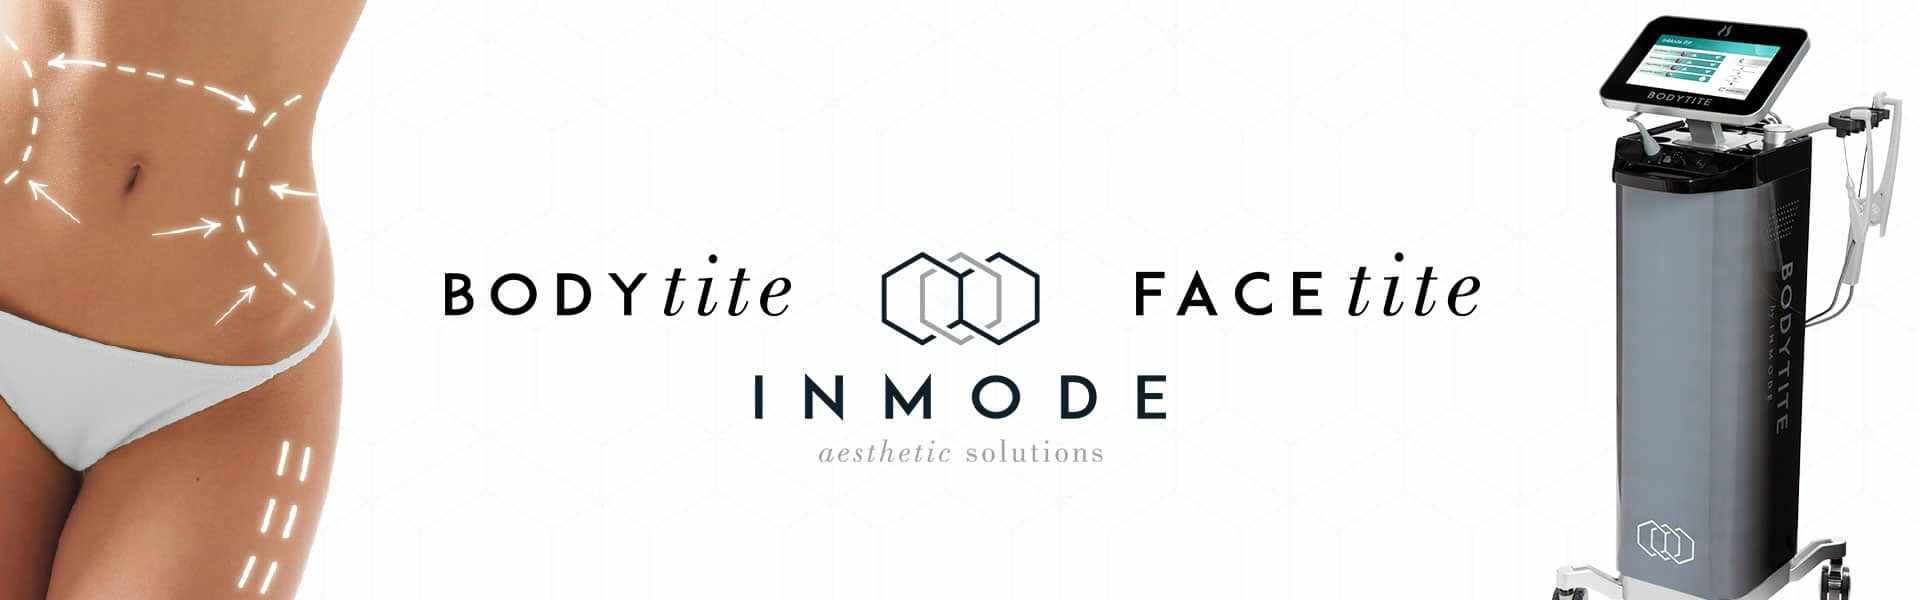 Facetite doctor Beverly Hills